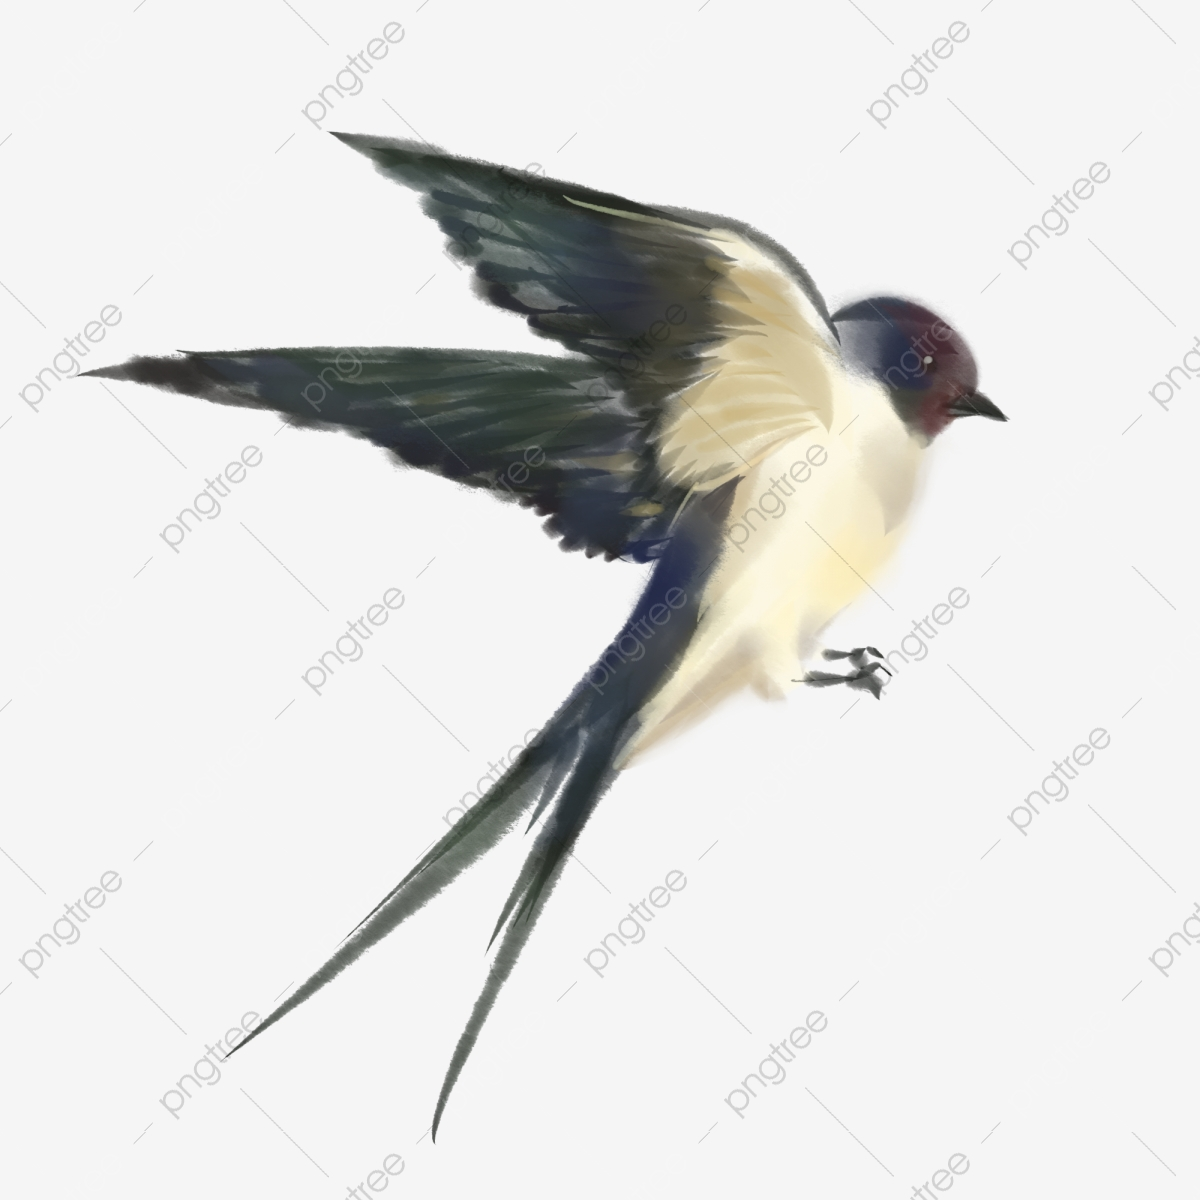 Swallow Png - Hand Drawn Swallow Illustration Creative Swallow Illustration Cute ...